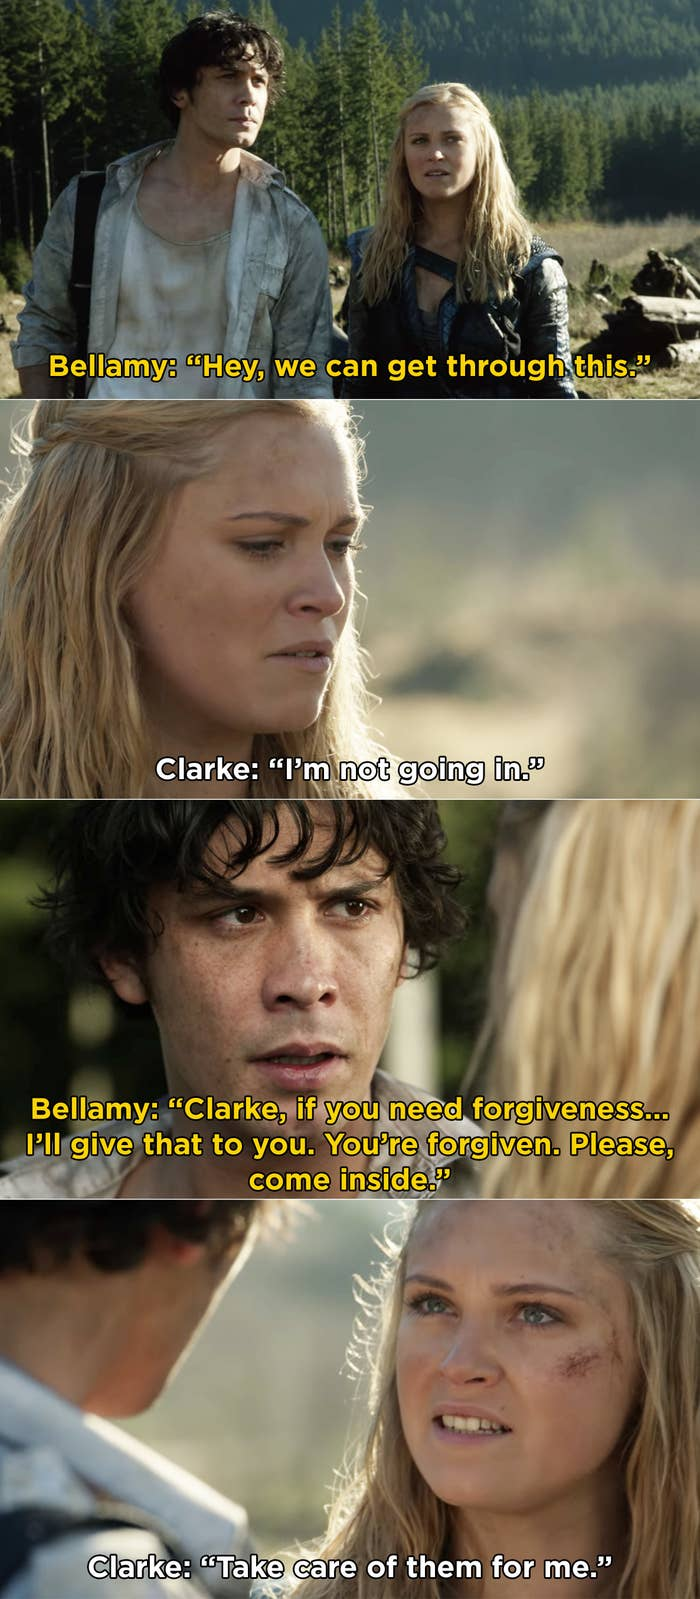 Bellamy telling Clarke that he will give her forgiveness and asking her to come inside, but Clarke refusing